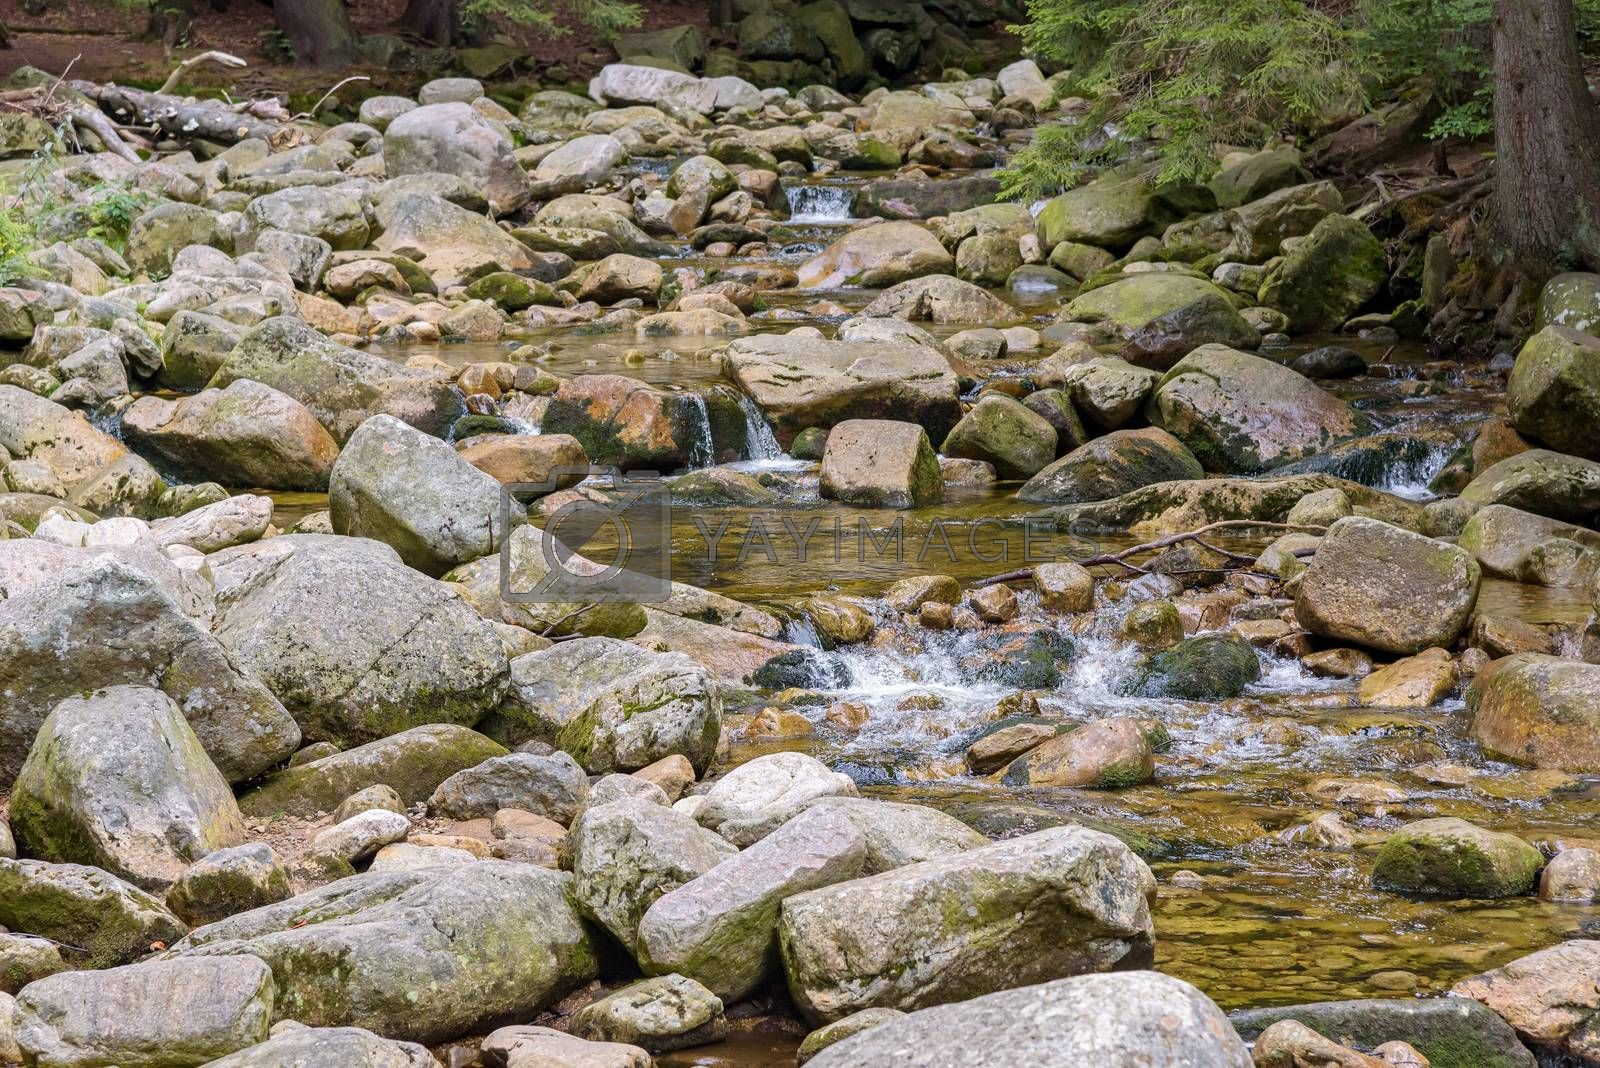 Royalty free image of View of the Mumlava river in Czech Republic by mkos83